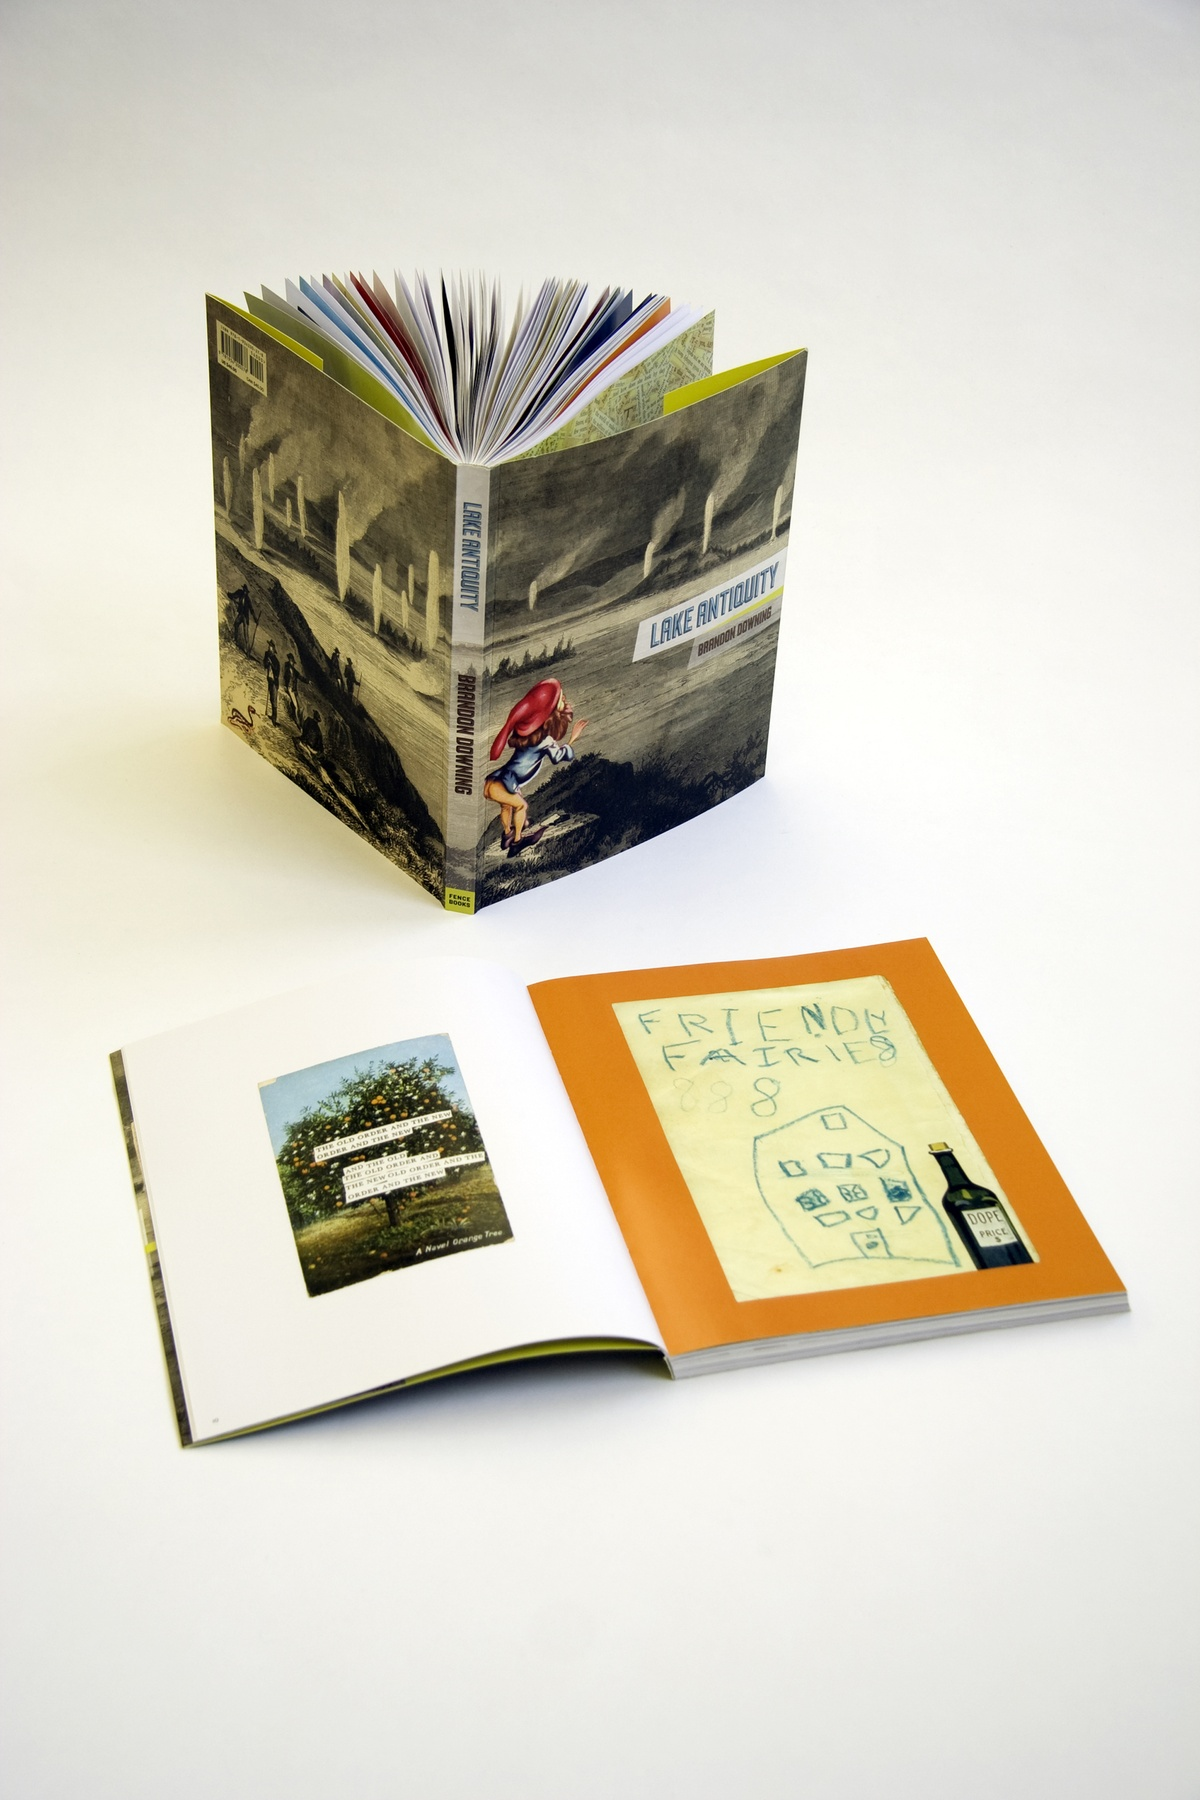 Project image 2 for Lake Antiquity, Fence Books